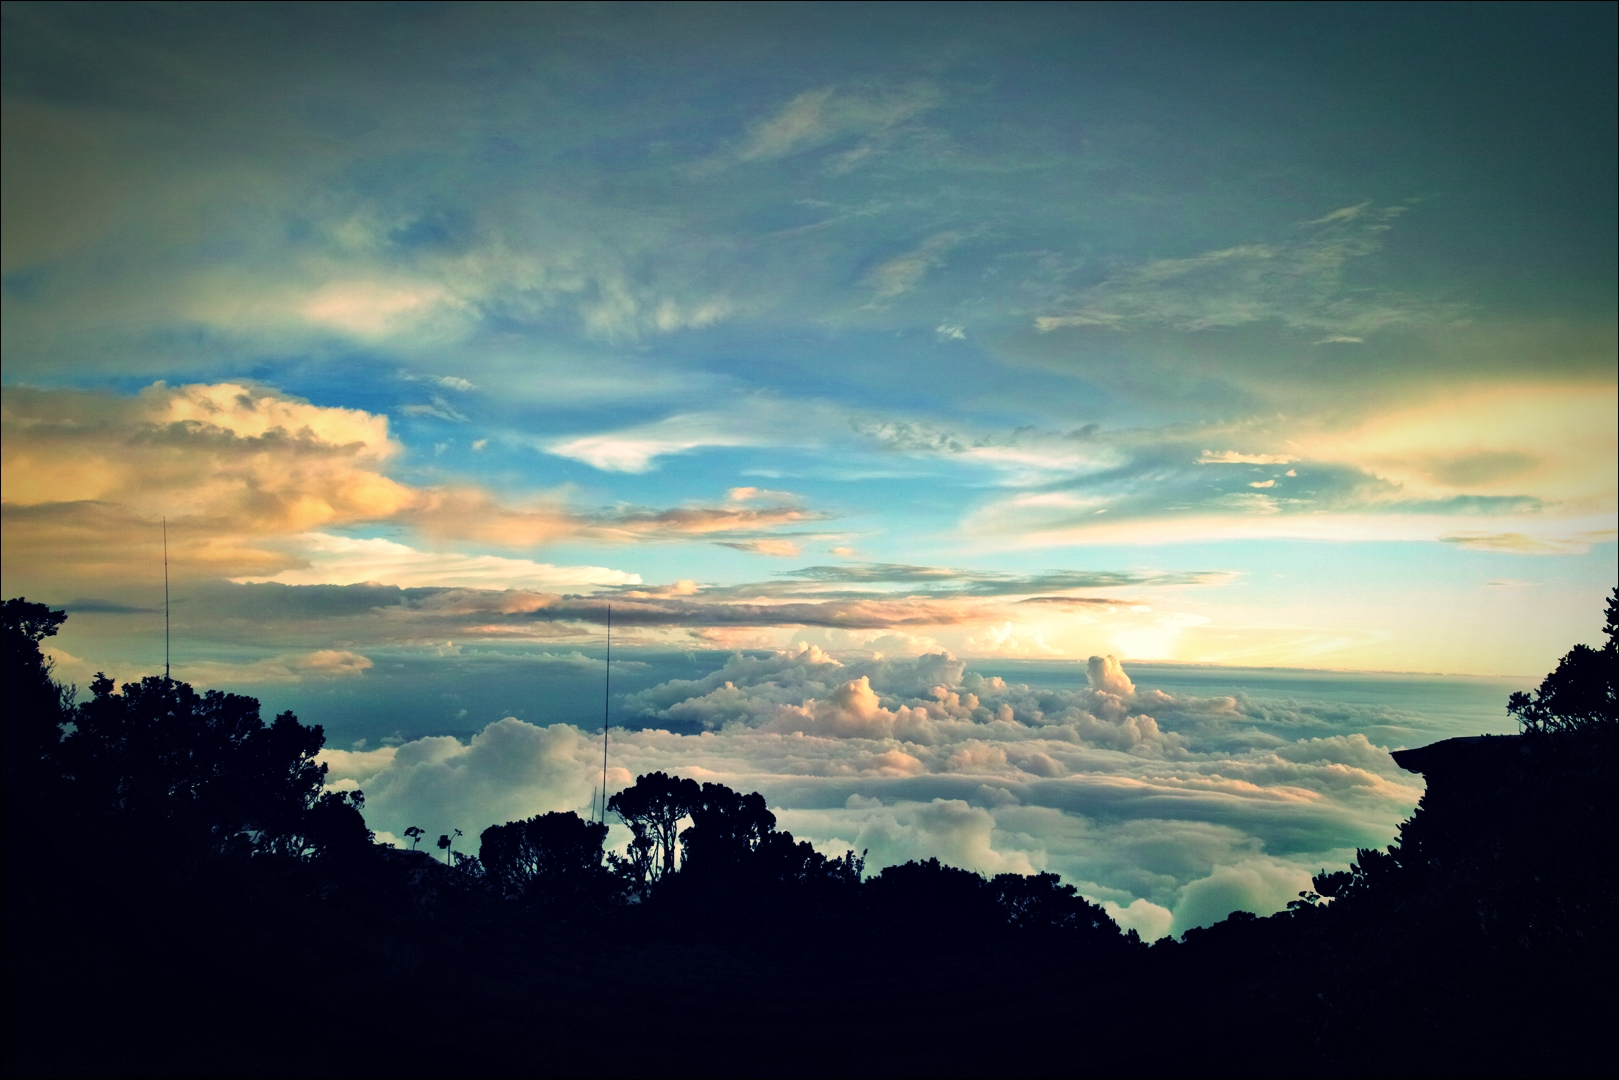 석양-'키나발루 산 등정 Climbing mount Kinabalu Low's peak the summit'